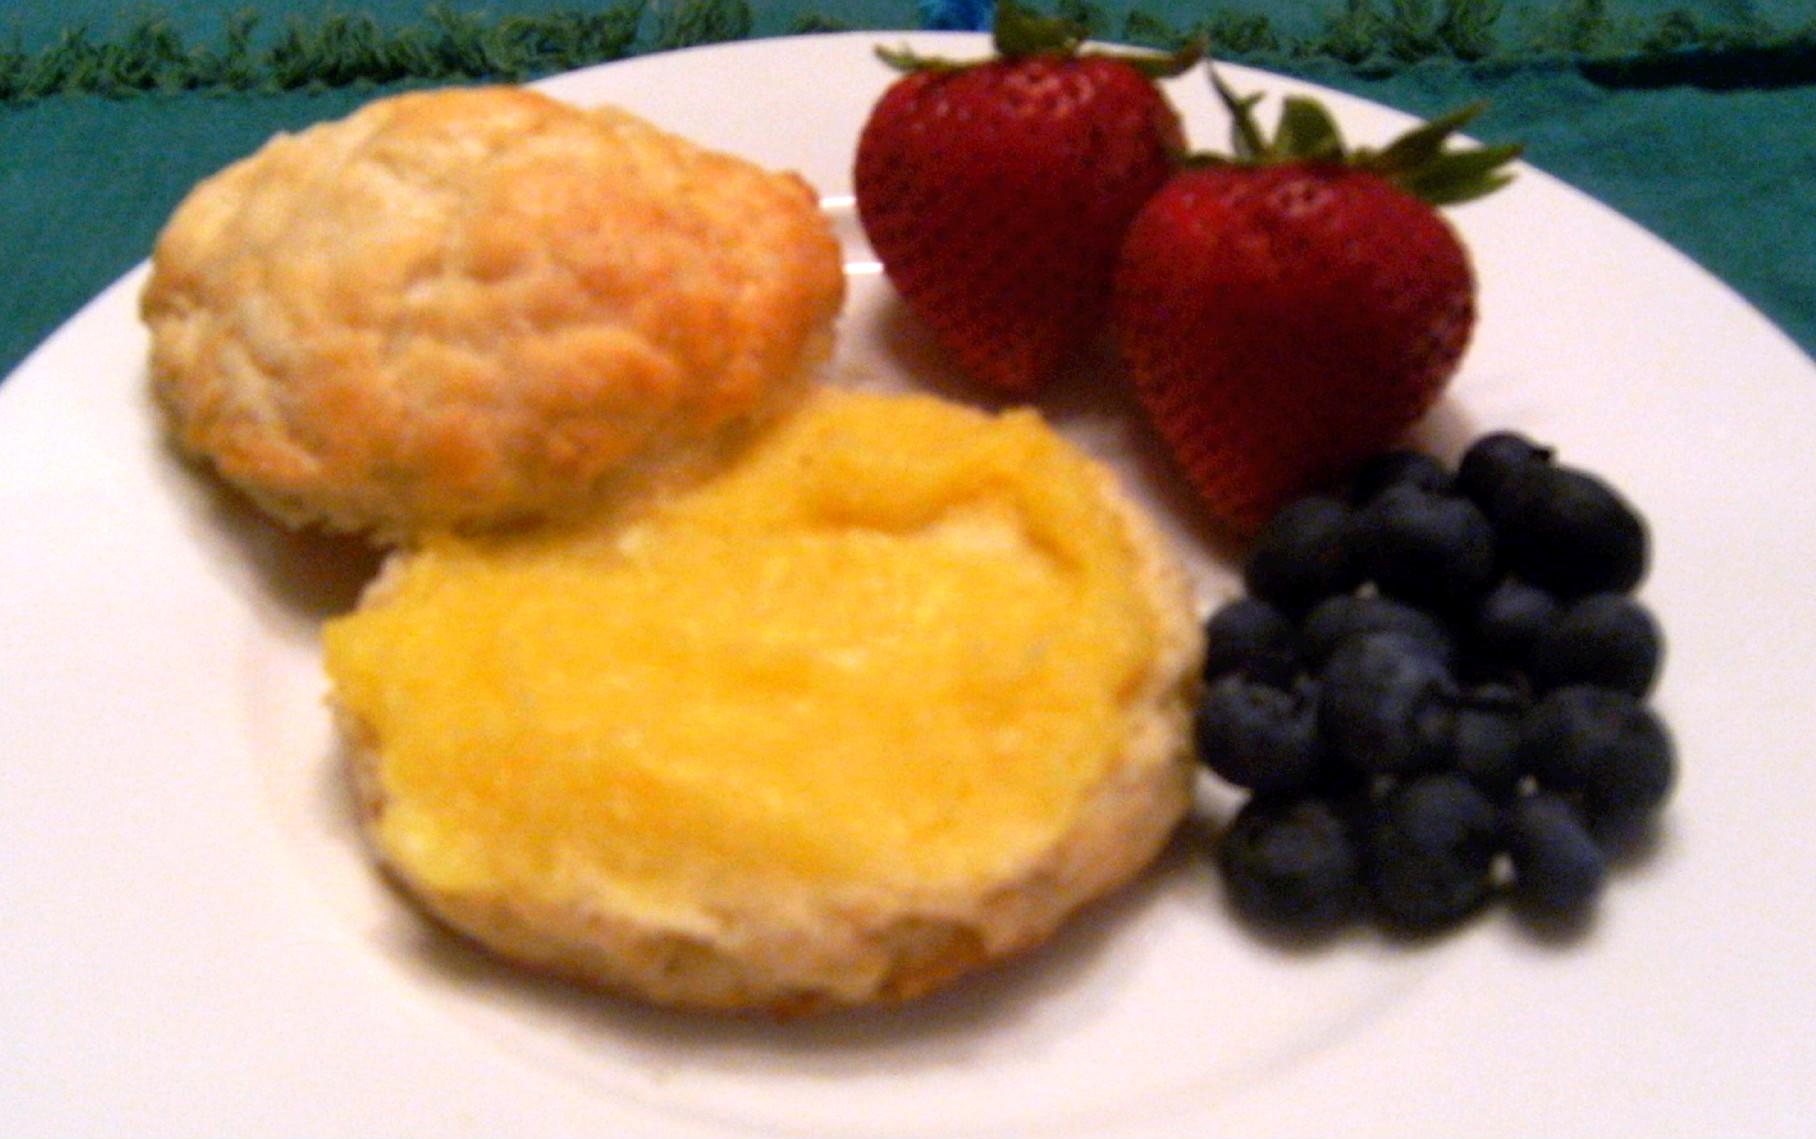 Homemade biscuits with lemon curd